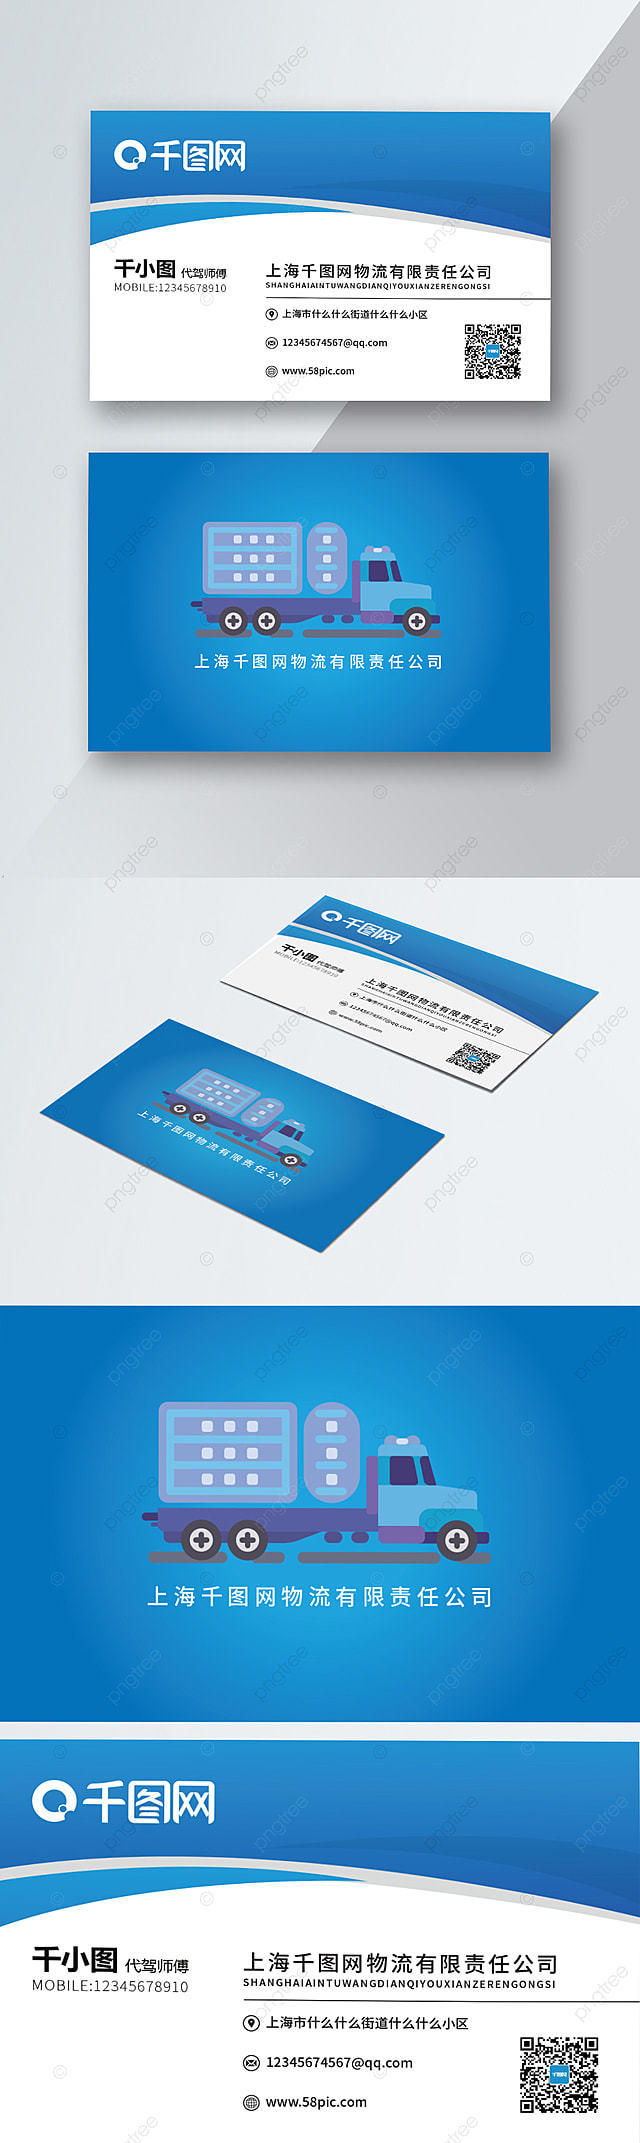 Logistics Company Business Card Vector Material Logistics